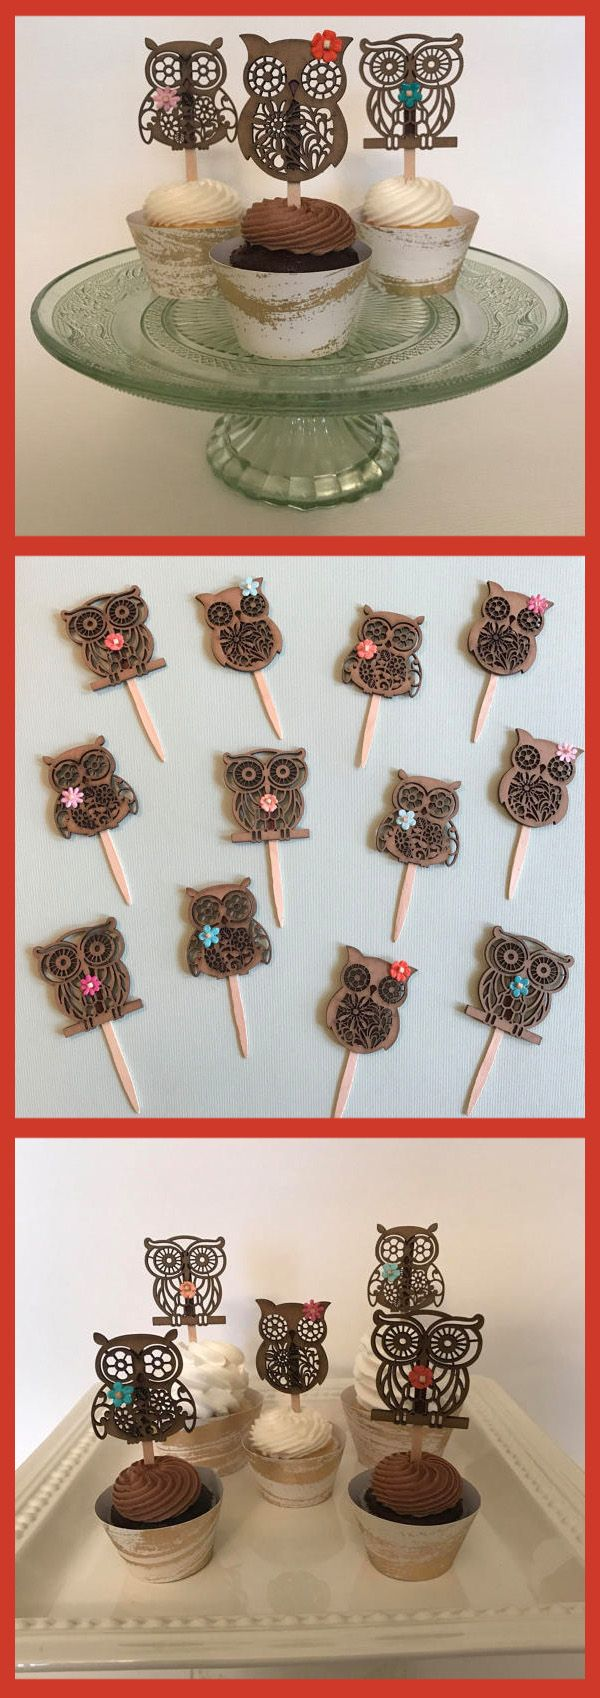 Owl Cupcake Toppers Rustic Owl Party Decorations Girl Birthday Party Baby Shower Bridal Shower First Birthday Woodland Animals Thanksgiving #affiliate #birthdayparty #party #owl #cupcakes #birthdaycakes